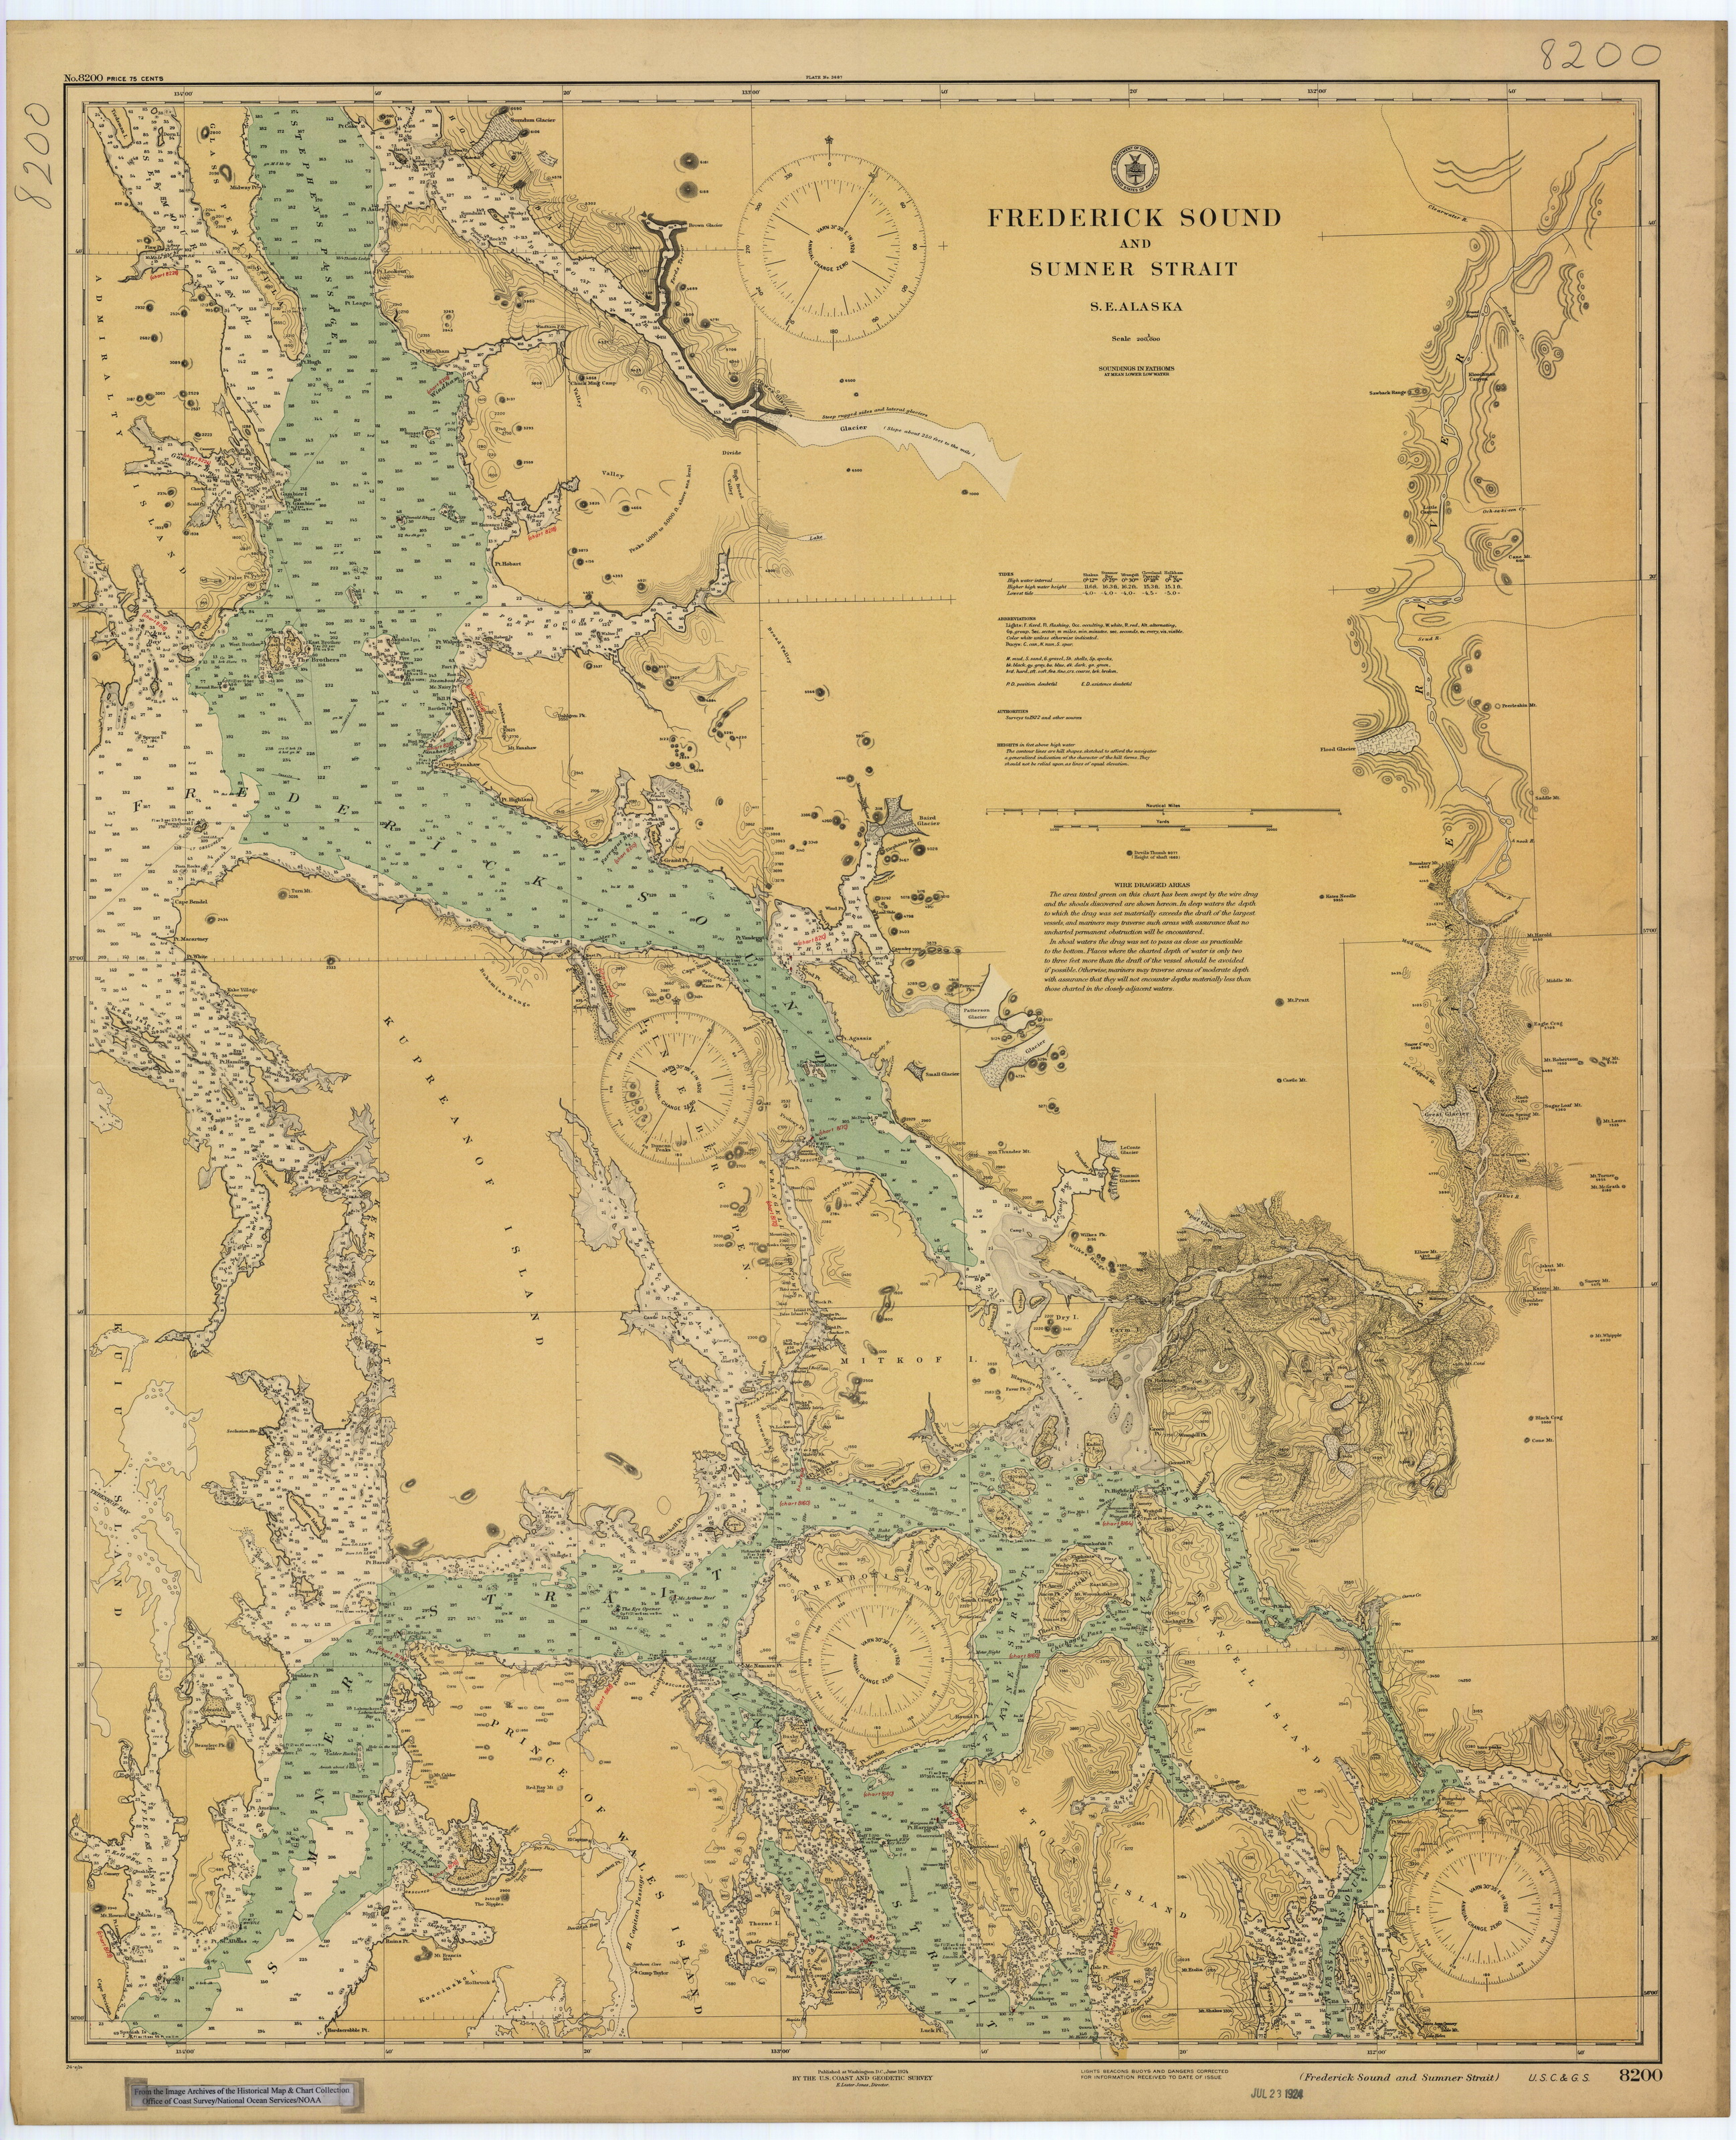 Vintage Nautical Map | www.pixshark.com - Images Galleries ...